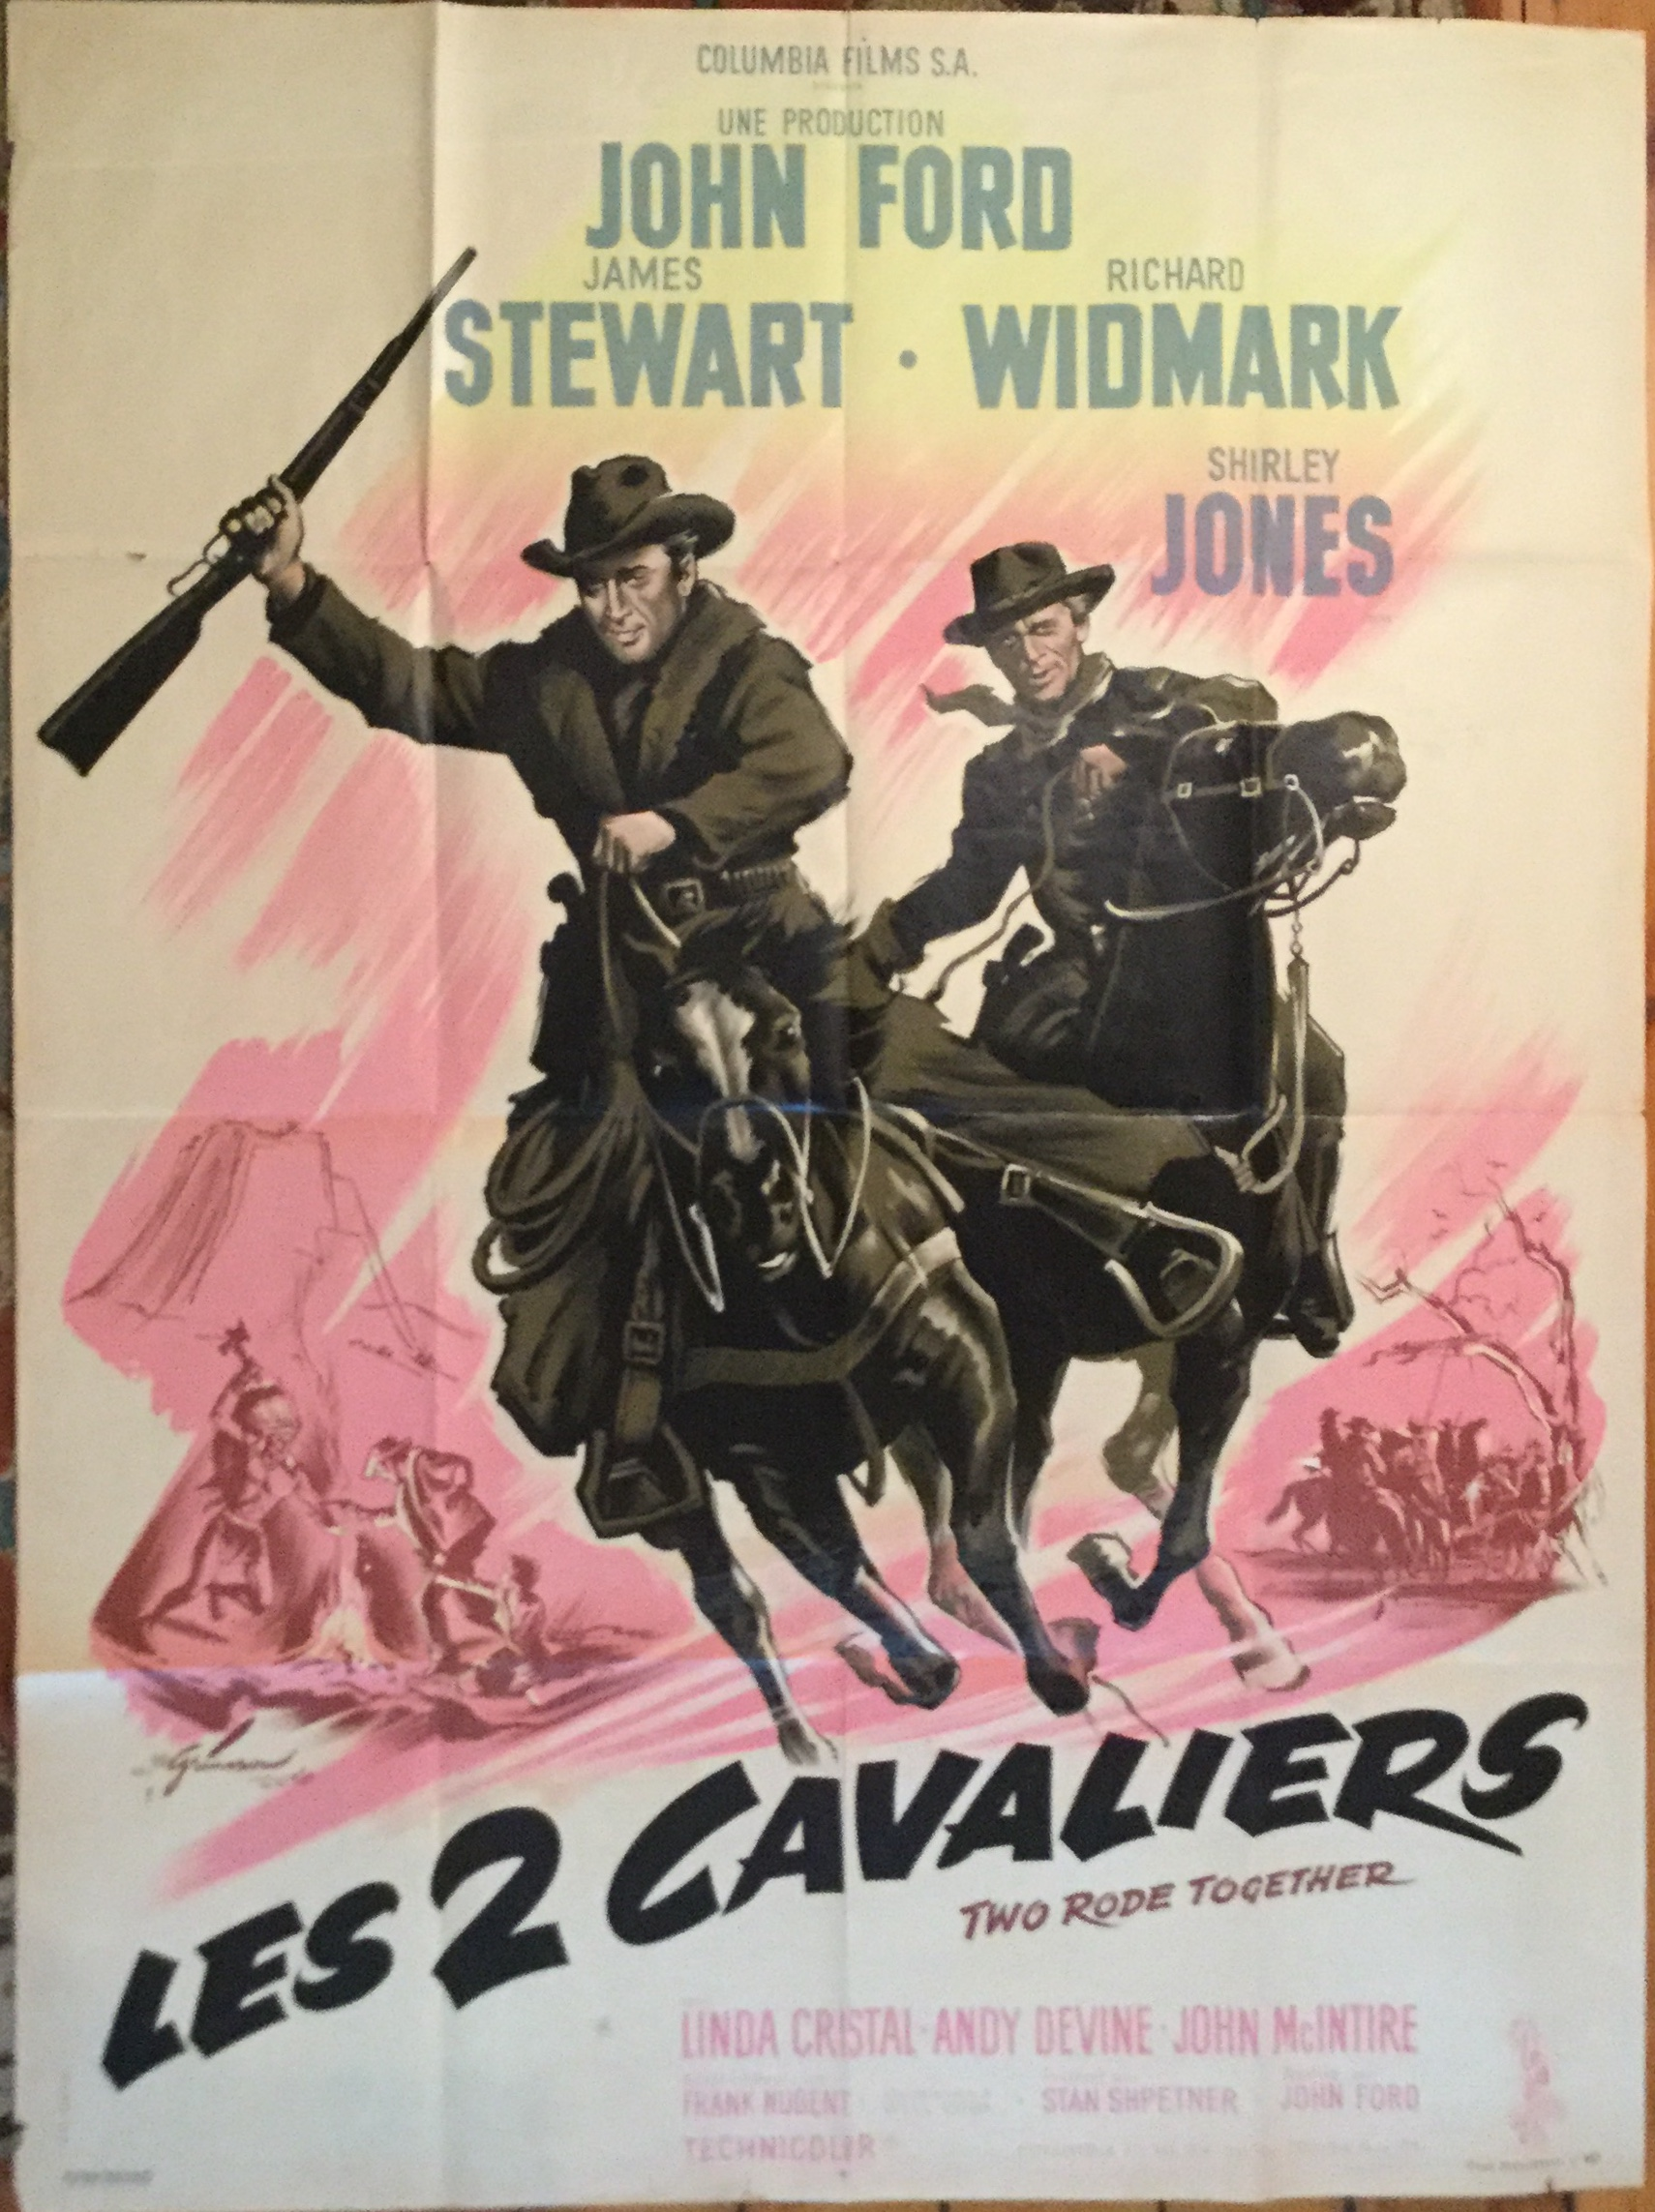 U1091 TWO RODE TOGETHER [LES 2 CAVALIERS]